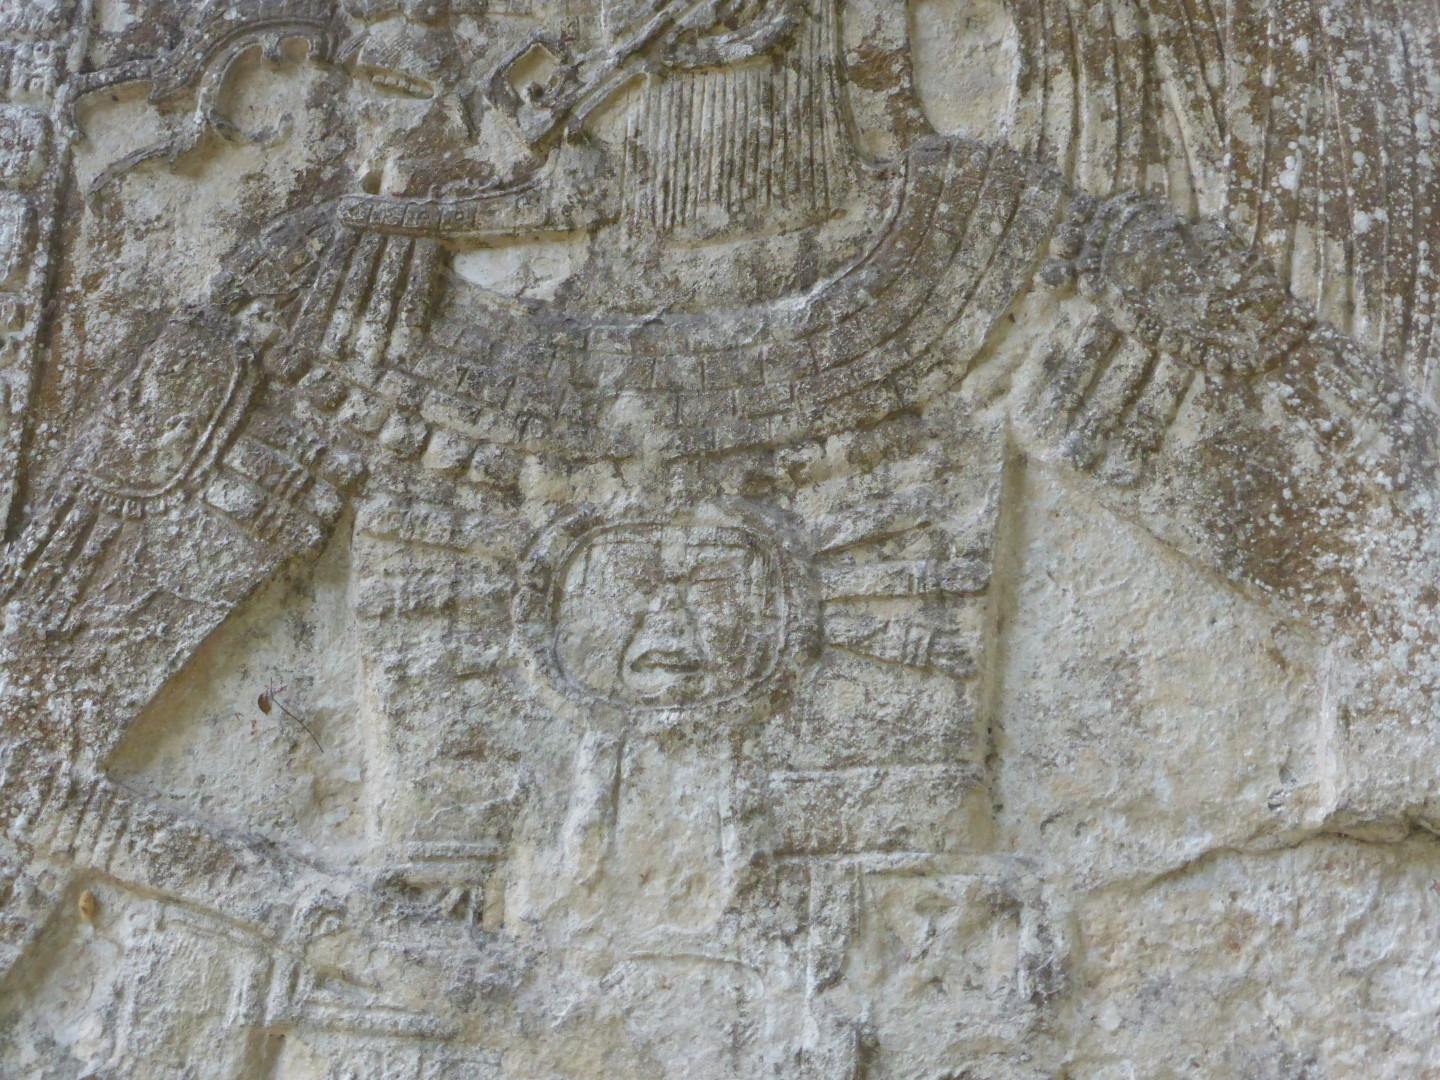 Detail of carving at Ceibal, Guatemala